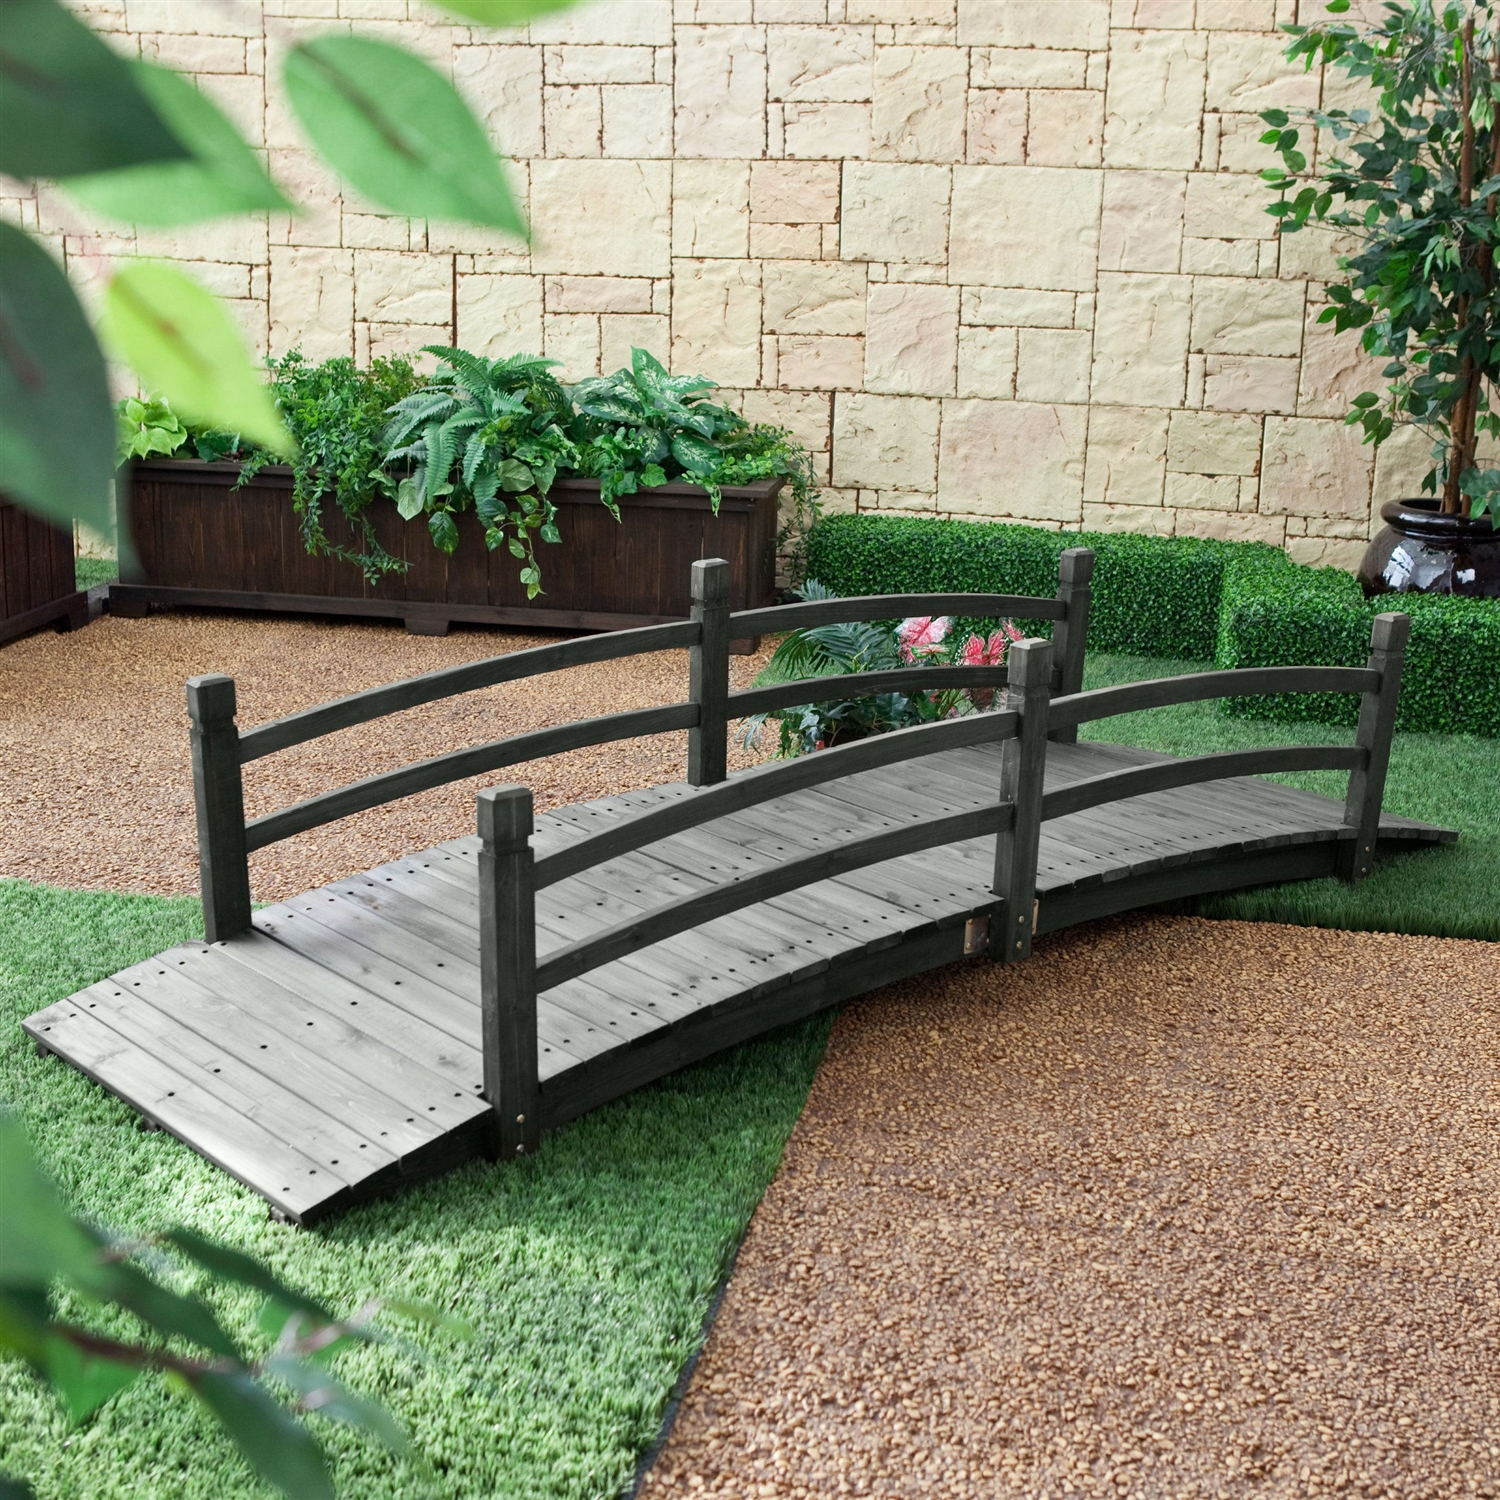 8 ft outdoor garden bridge with handraisl in weather resistant dark wood stain